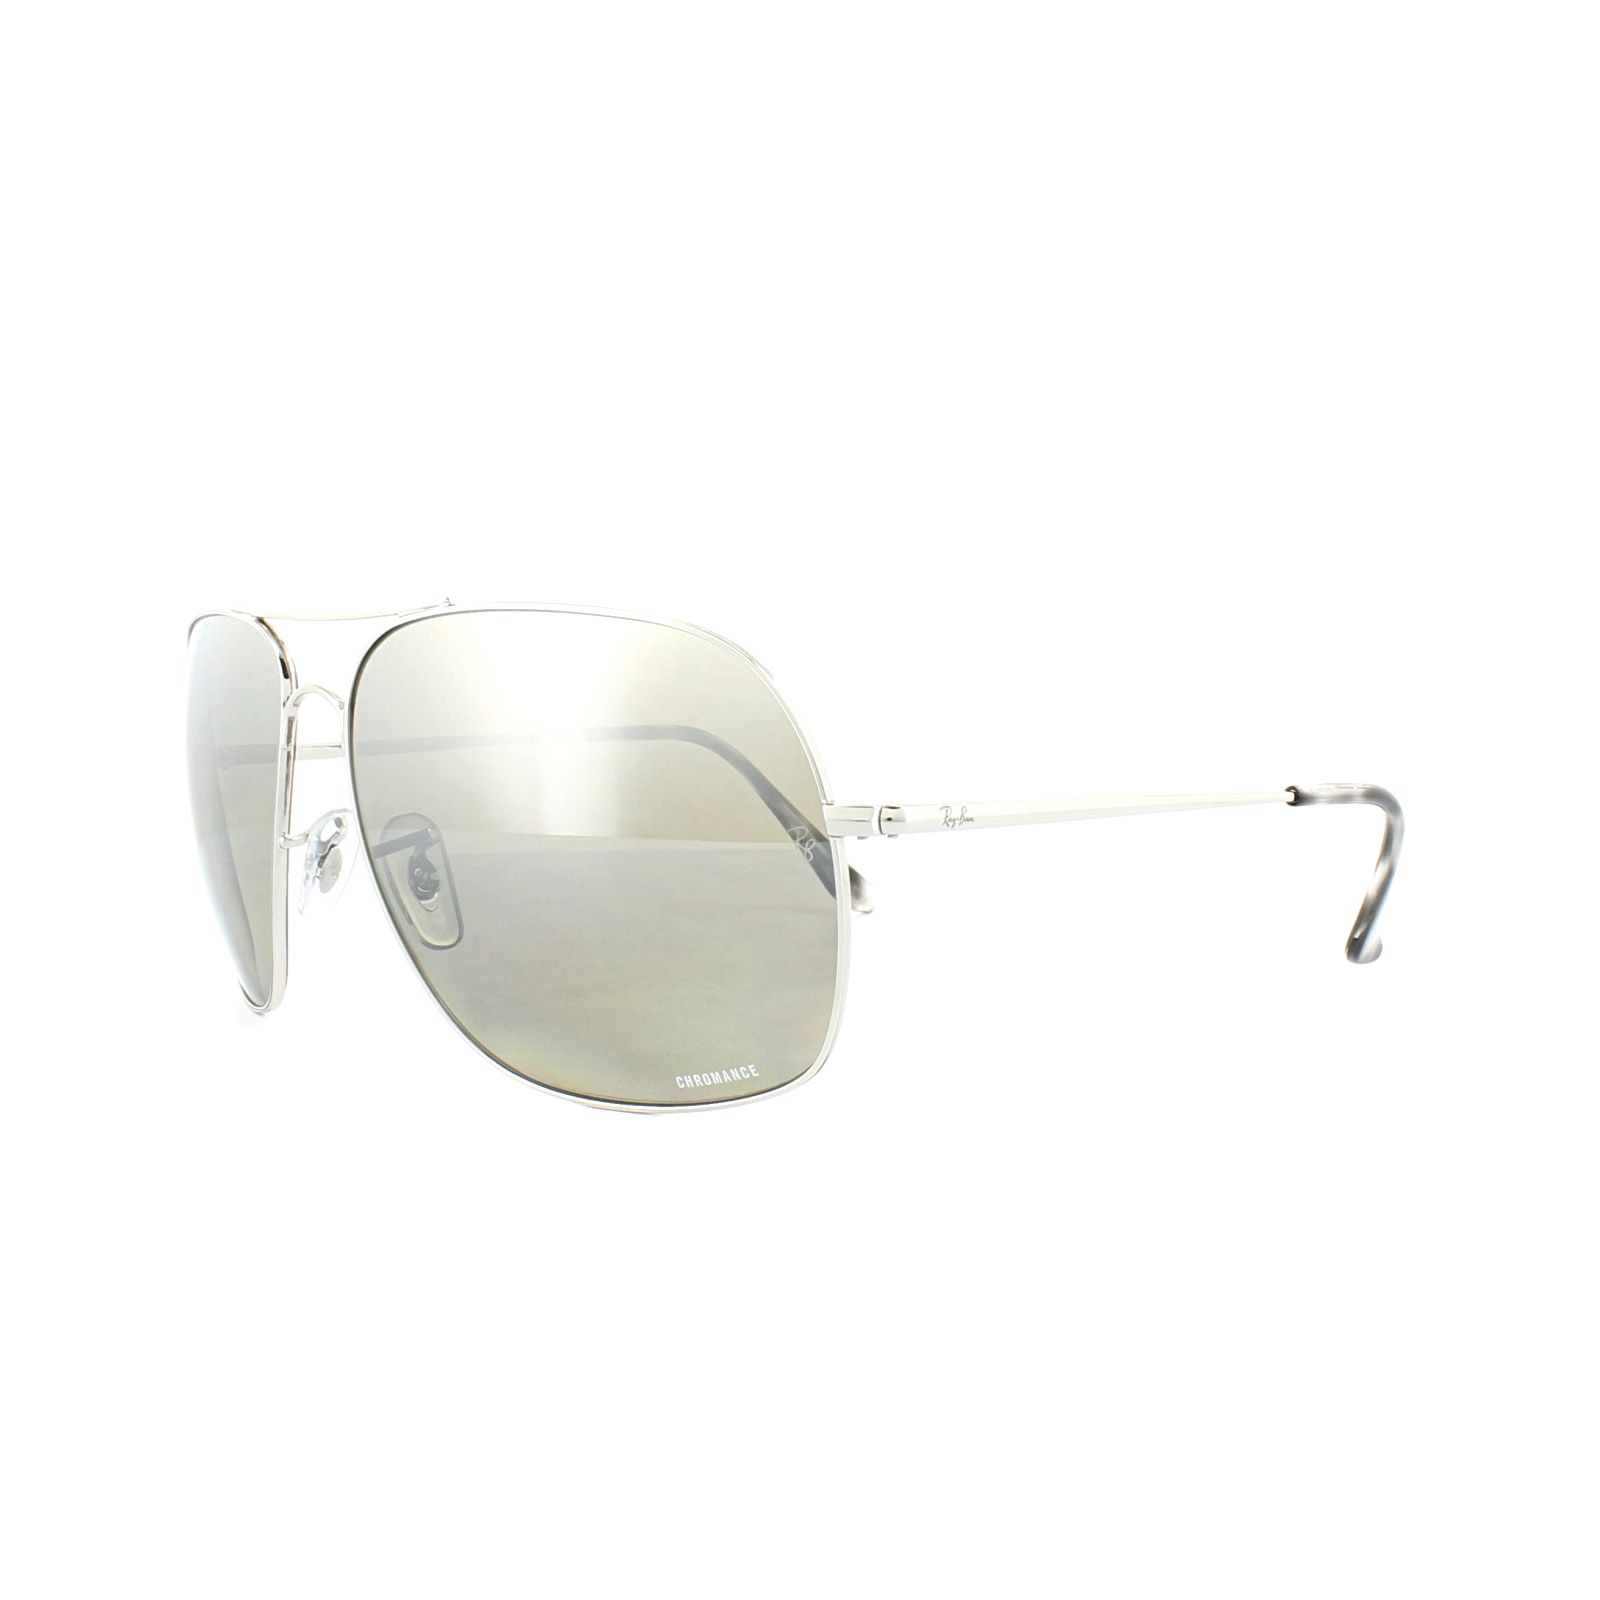 8d8a6daa06e Details about Ray-Ban Sunglasses 3587CH 003 5J Silver Polarized Silver  Mirror Chromance